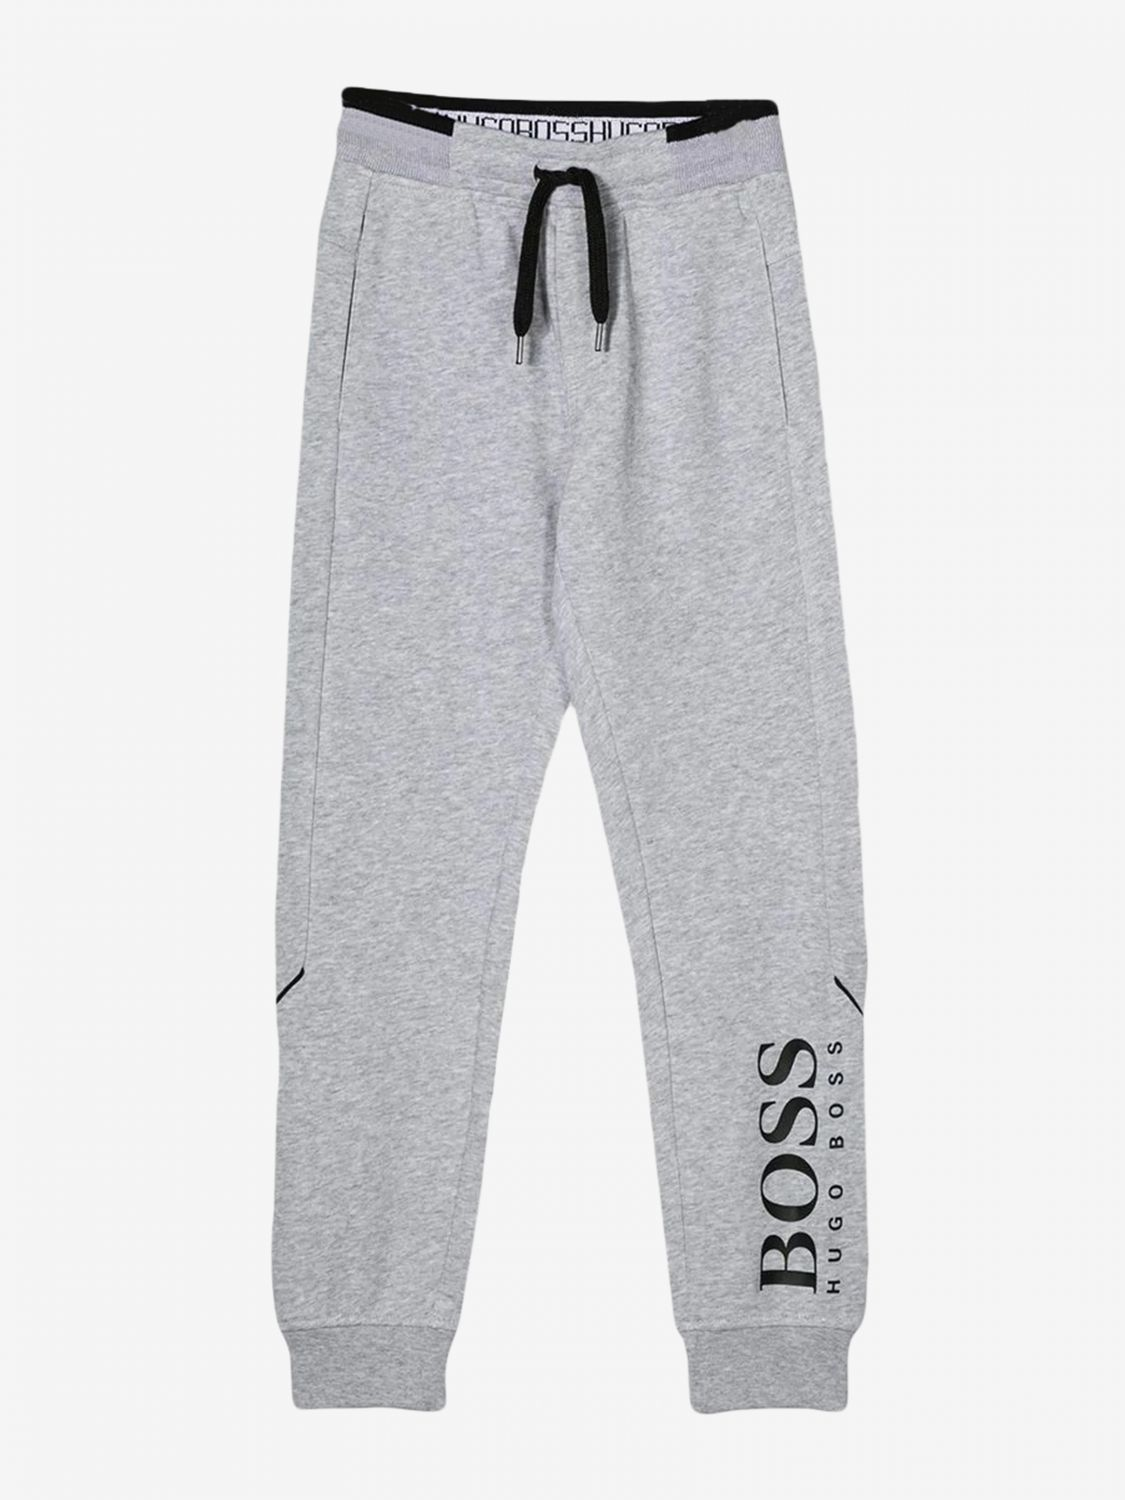 Hugo Boss jogging trousers with logo grey 1